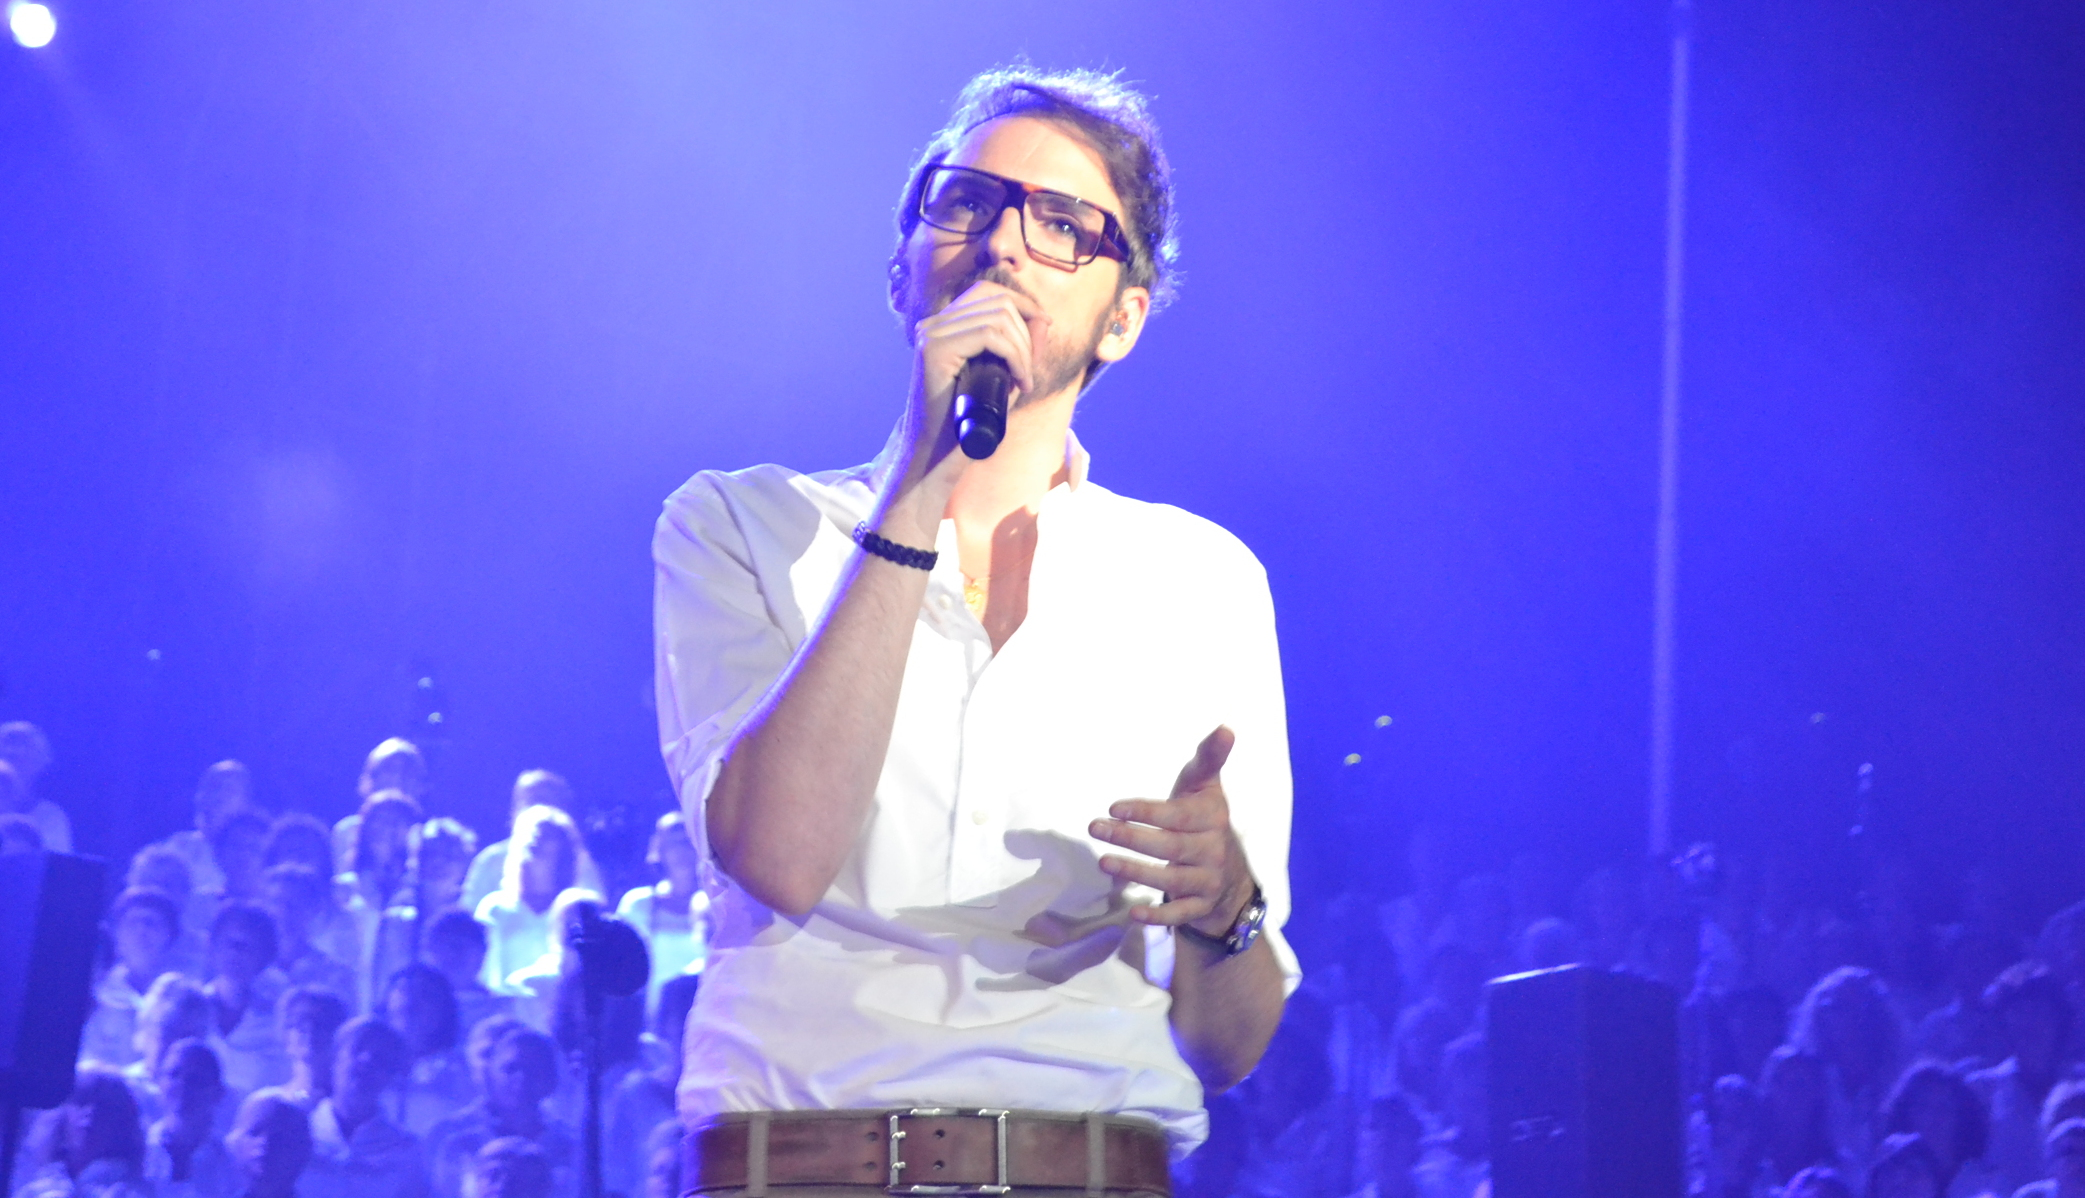 Photo of BAGNOLS La billetterie du concert de Christophe Willem est ouverte